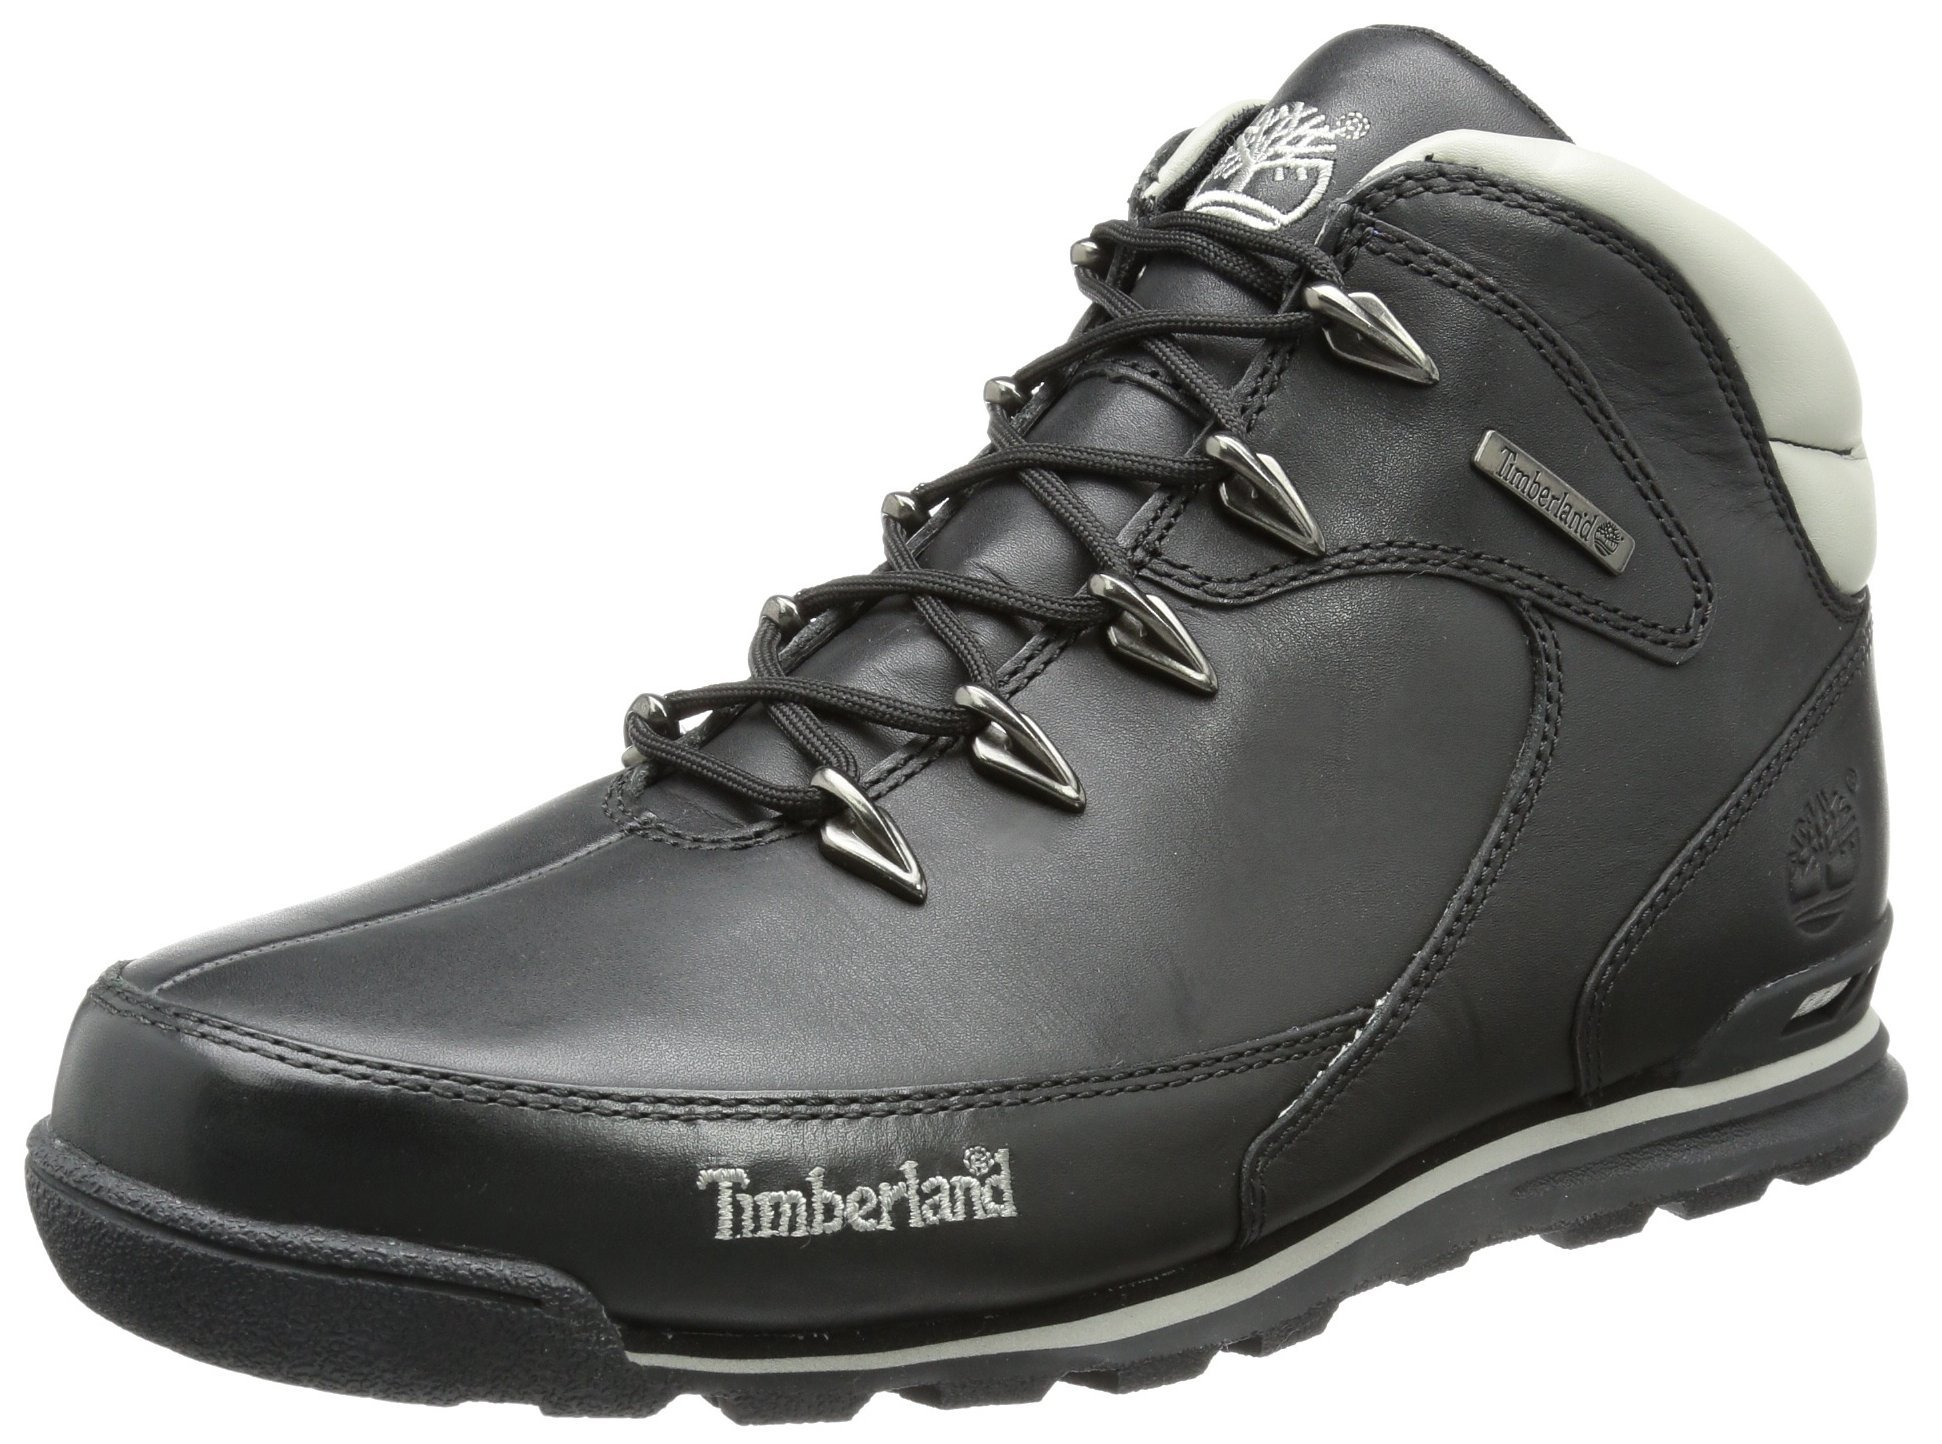 reputable site 860a9 9cd24 Timberland Earthkeepers Euro Rock Hiker, Stivali Uomo